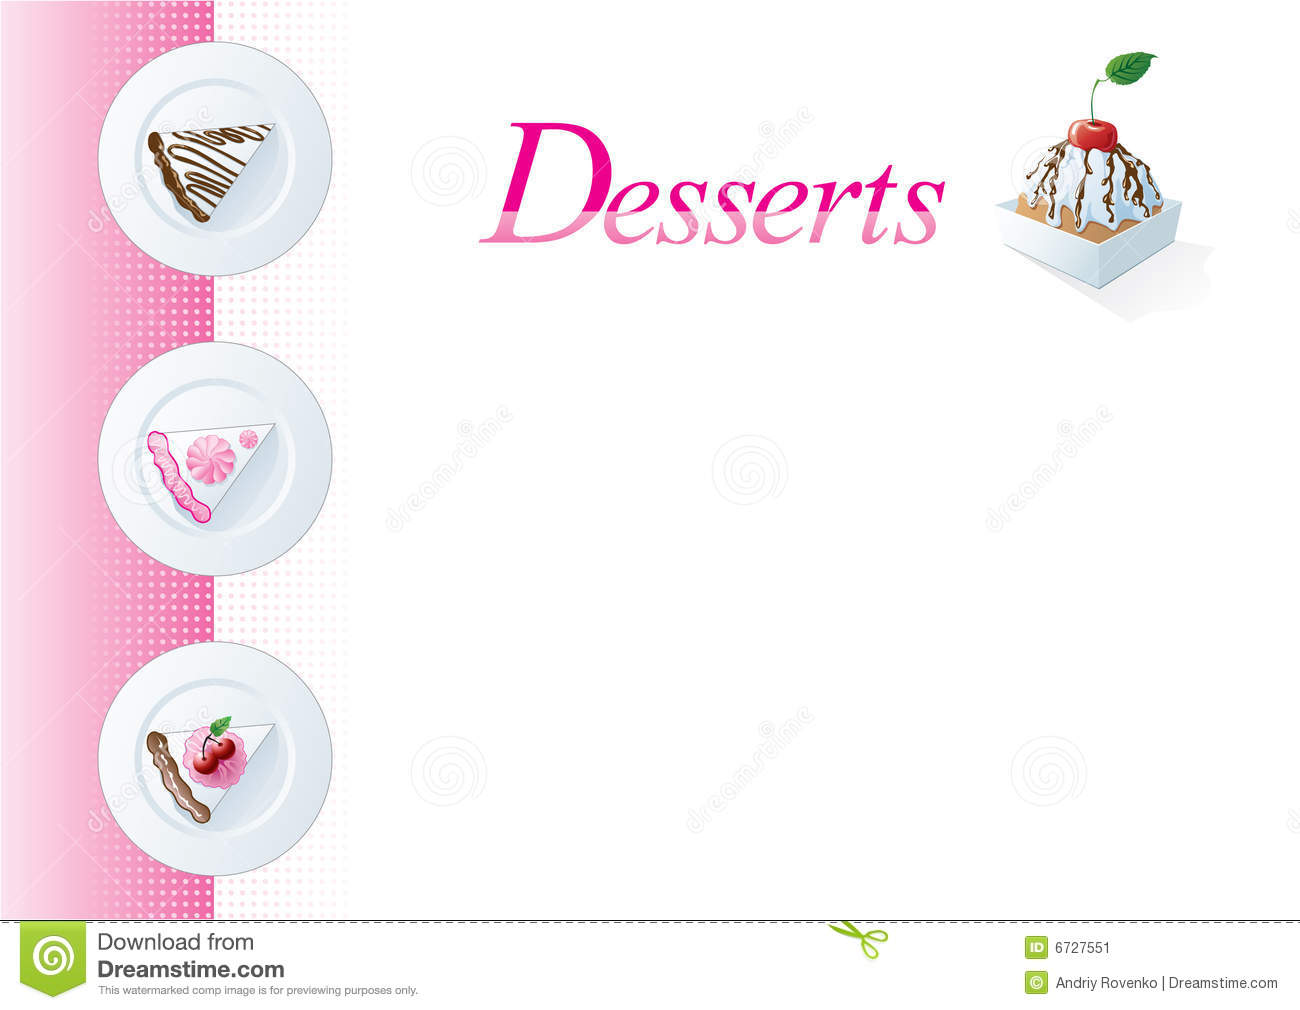 Dessert menu template stock vector. Image of sponge, biscuit - 6727551